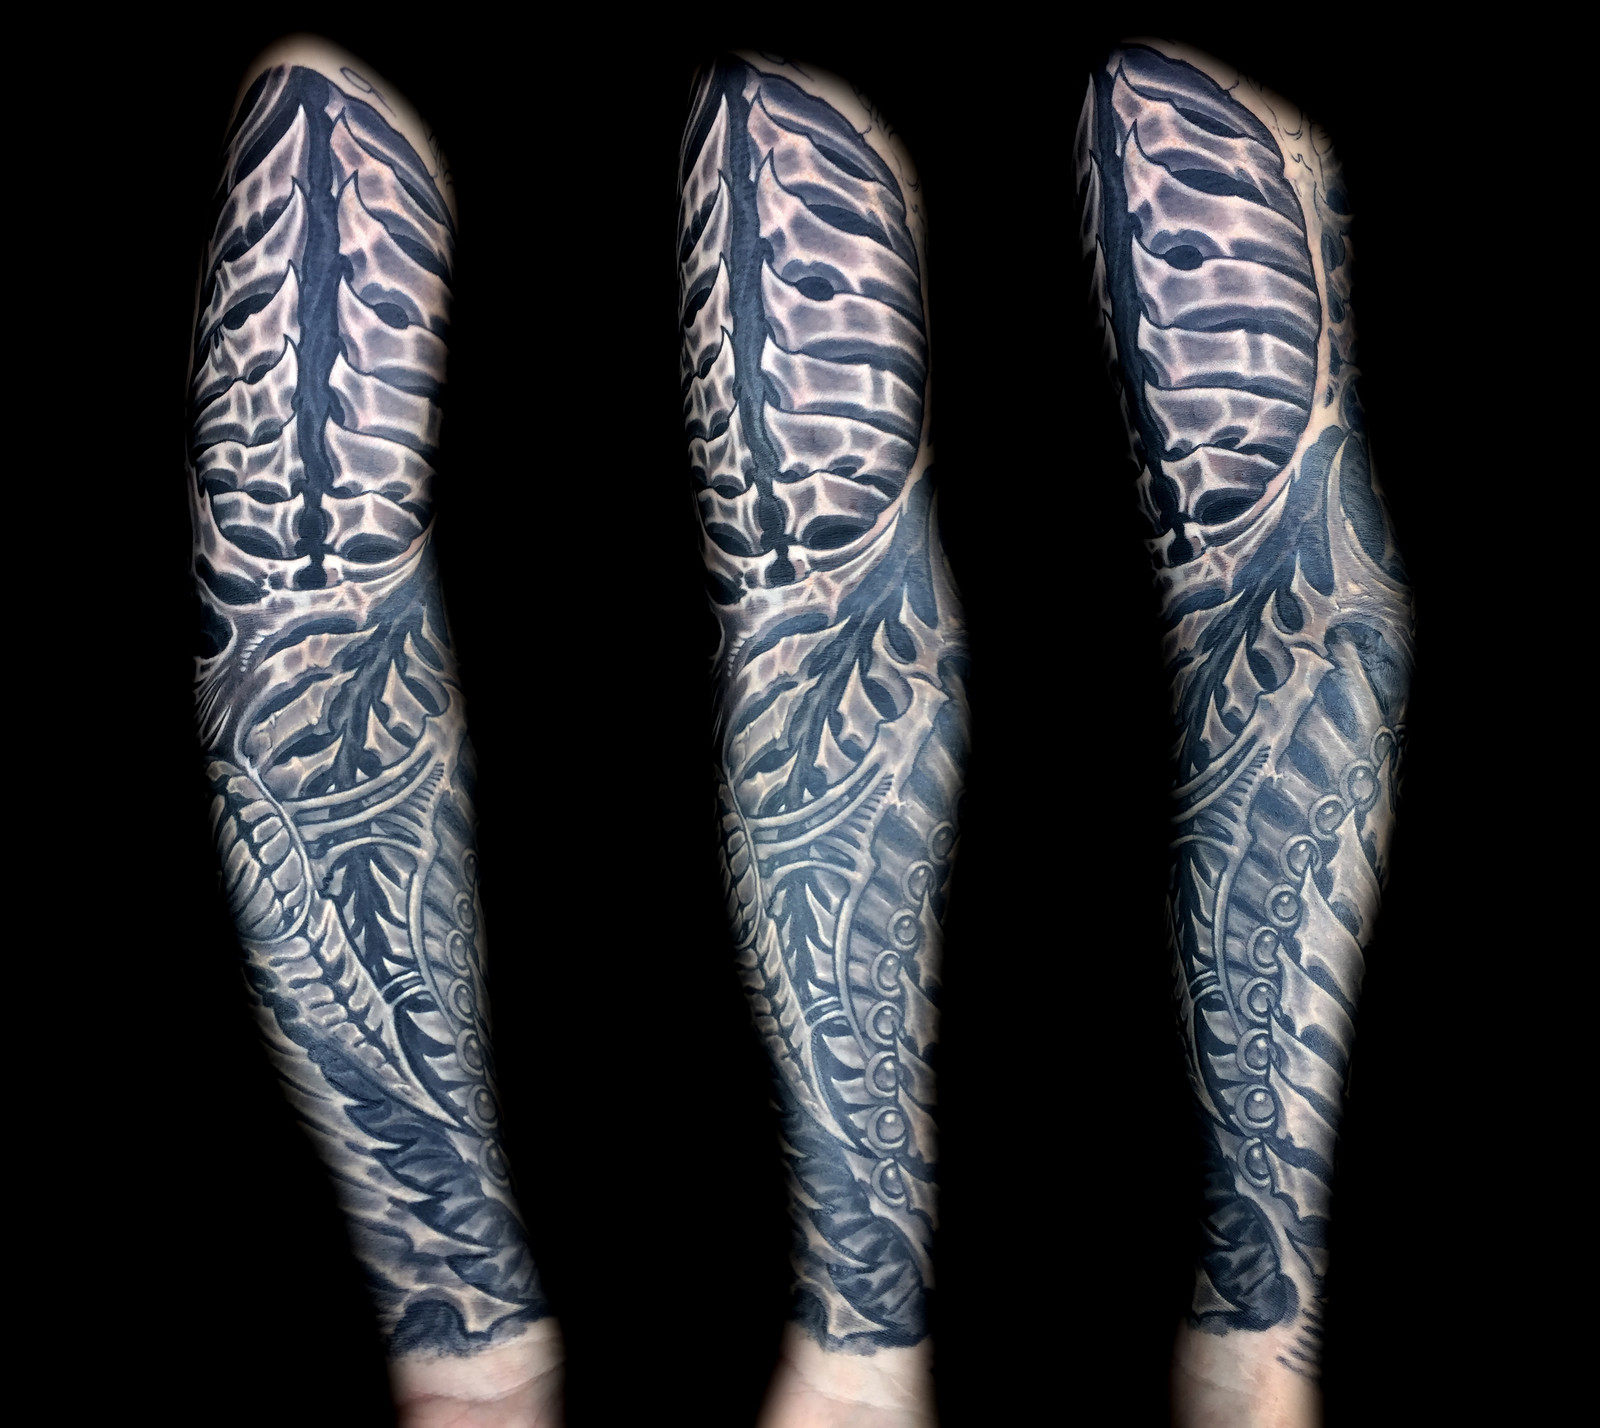 717ae92c0c7ea biomech-sleeve-tattoos-biomechanical-joe-riley-best-las-vegas-tattoo -artists-shops-inner-visions-tattoo-world-famous-las-vegas -strip-henderson.jpg